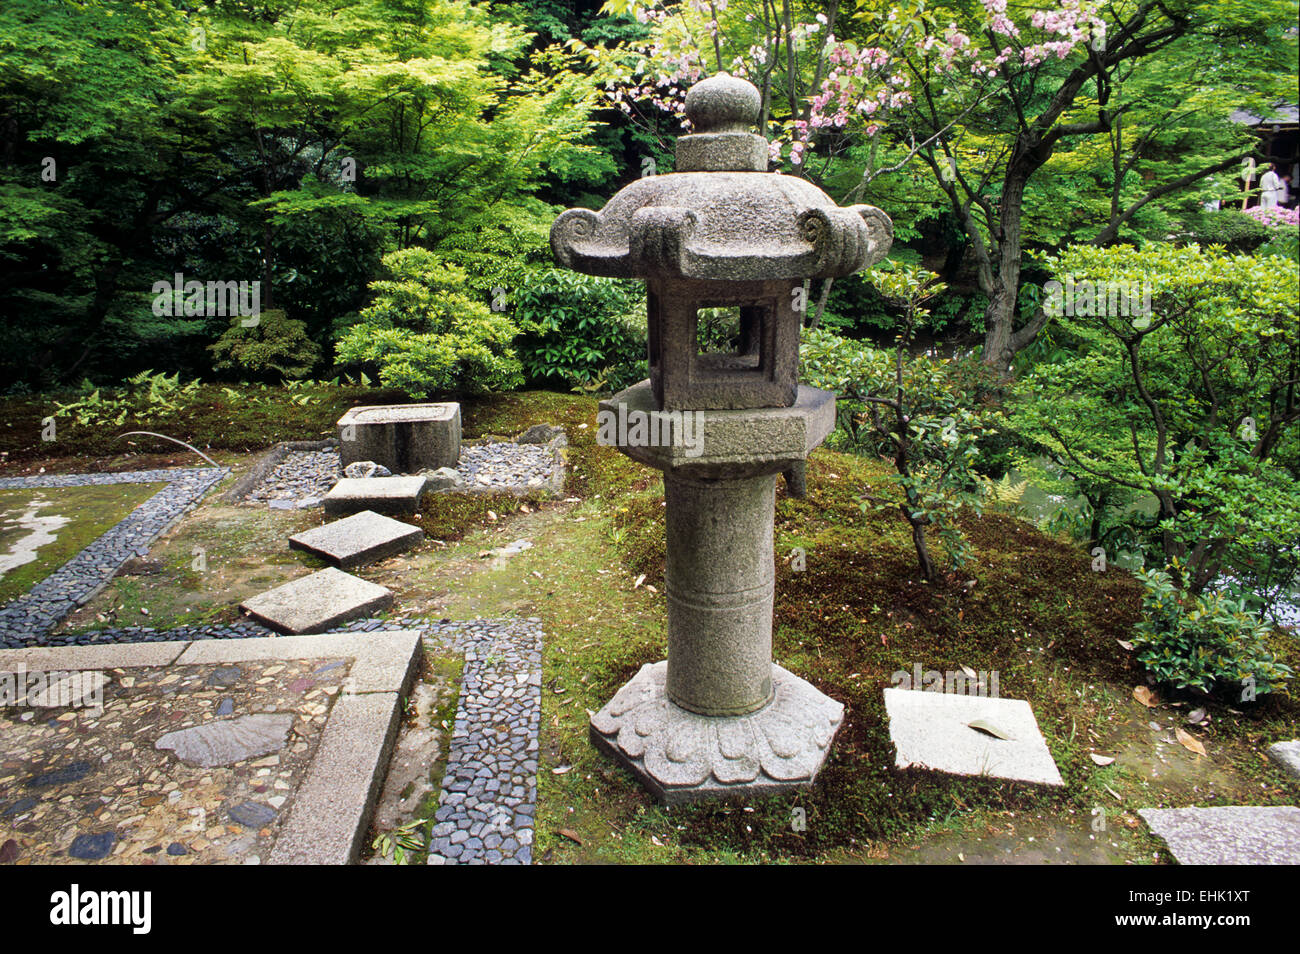 The City of Kyoto is a unique reserve for ancient Zen gardens and shrines that are over nine hundred years old. - Stock Image